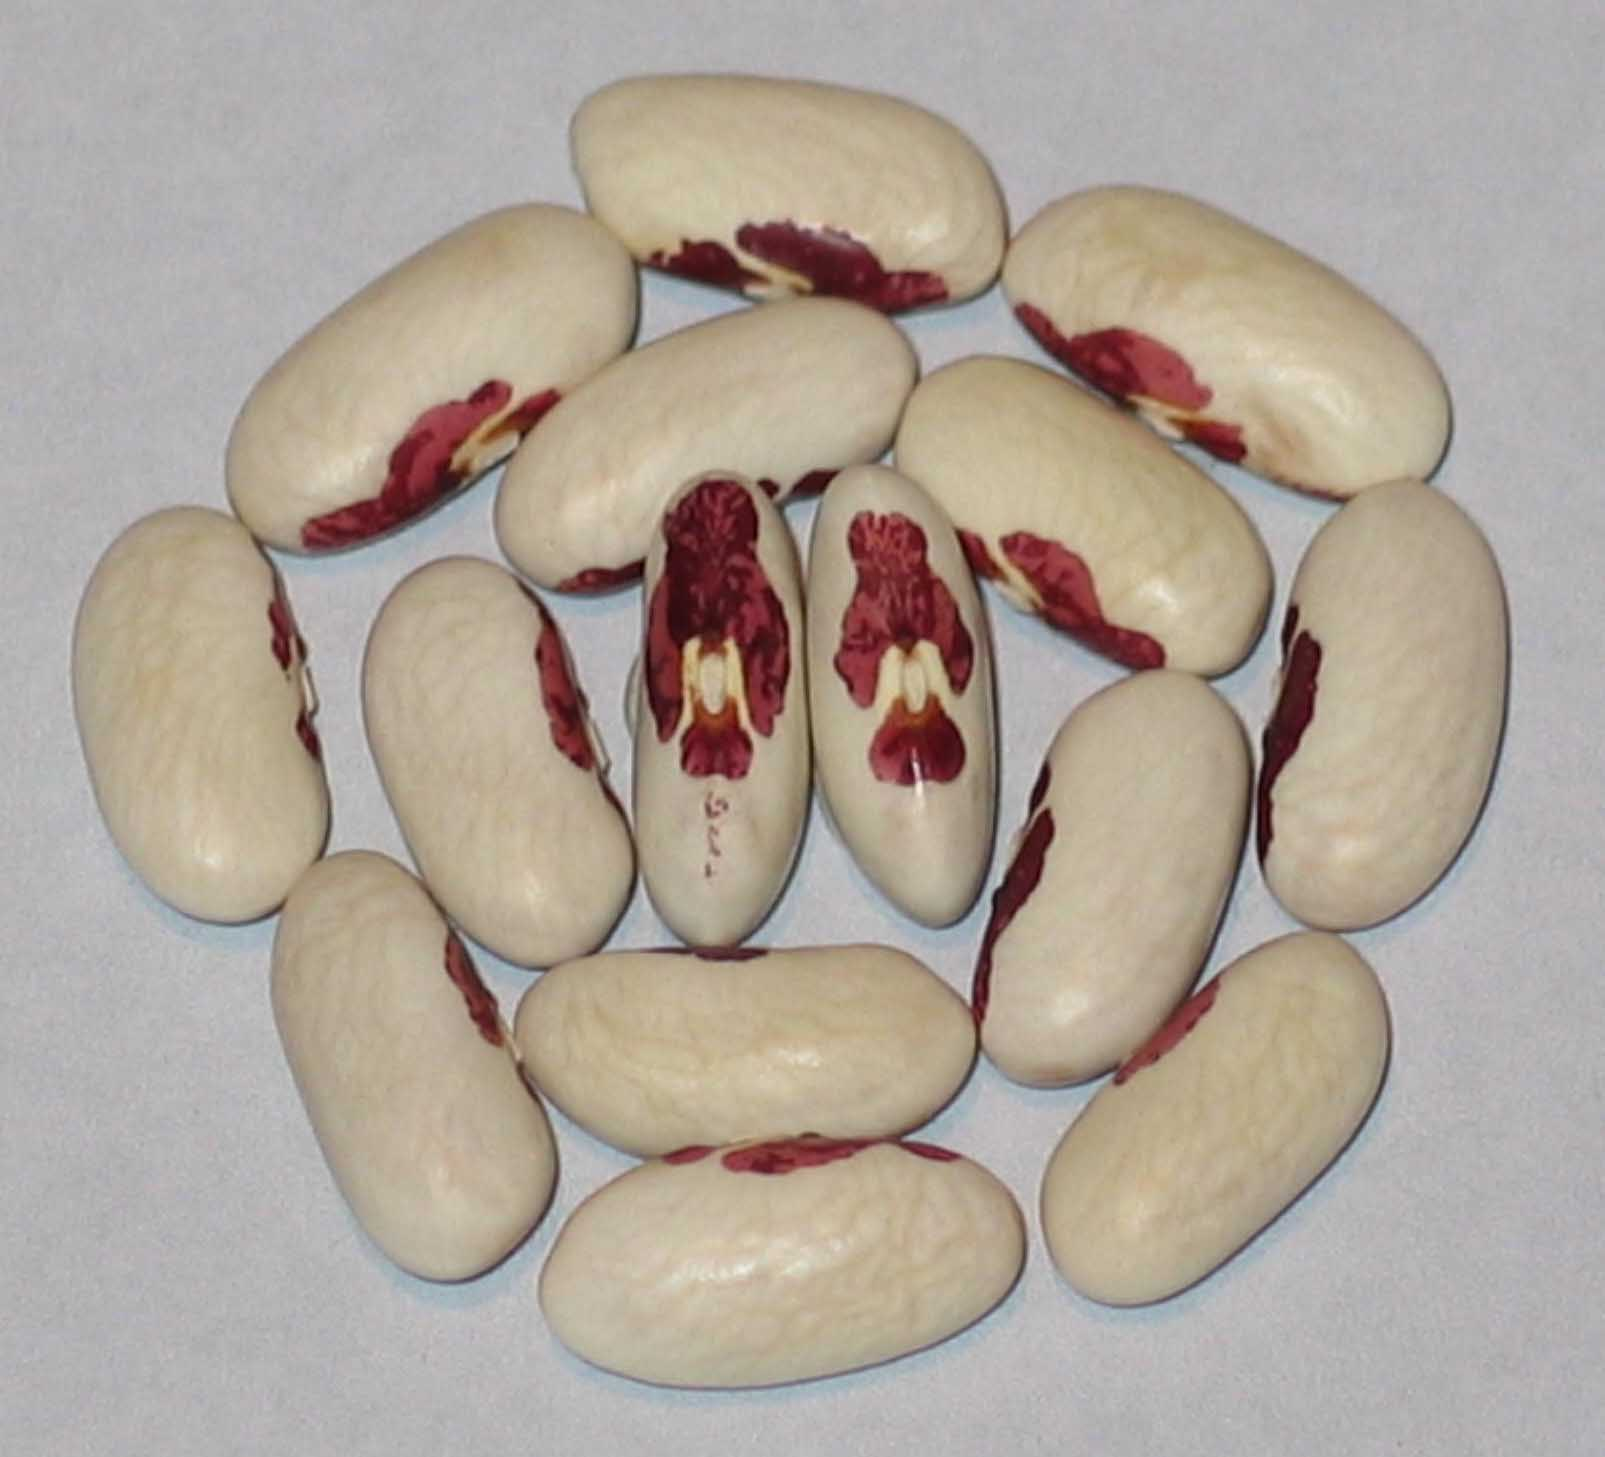 image of Nun's Belly Button beans